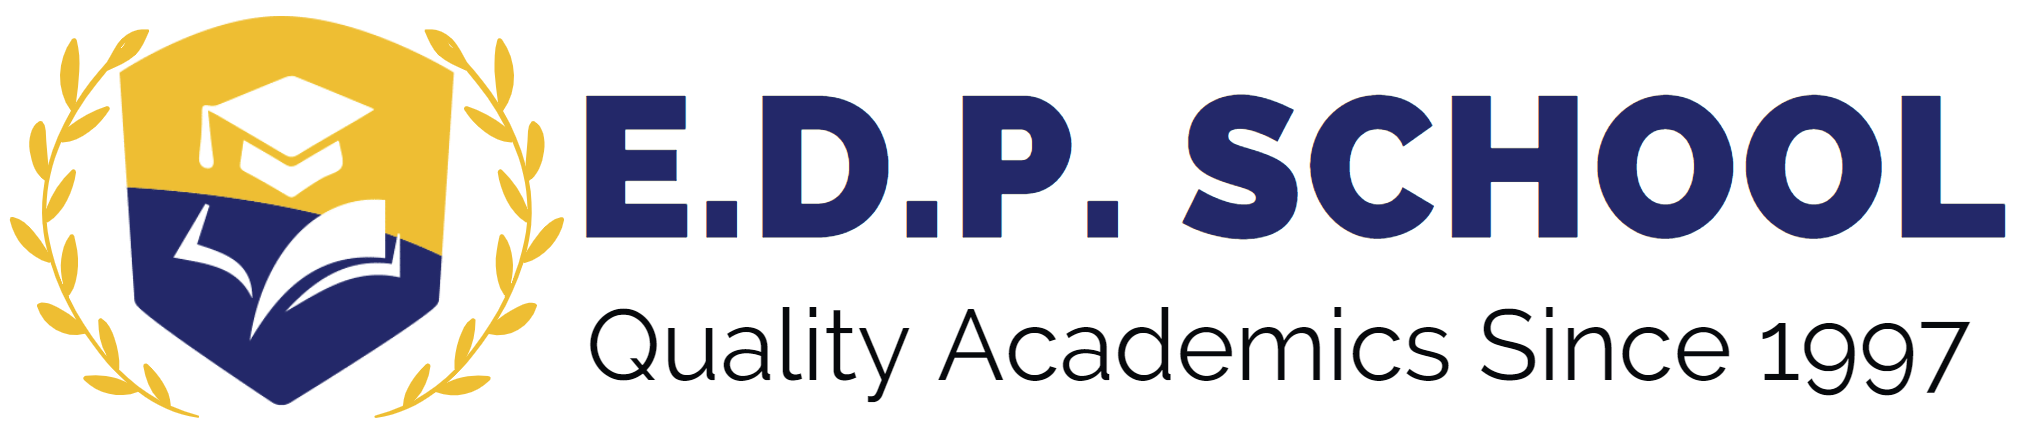 Welcome To E.D.P. School In Brooklyn, New York